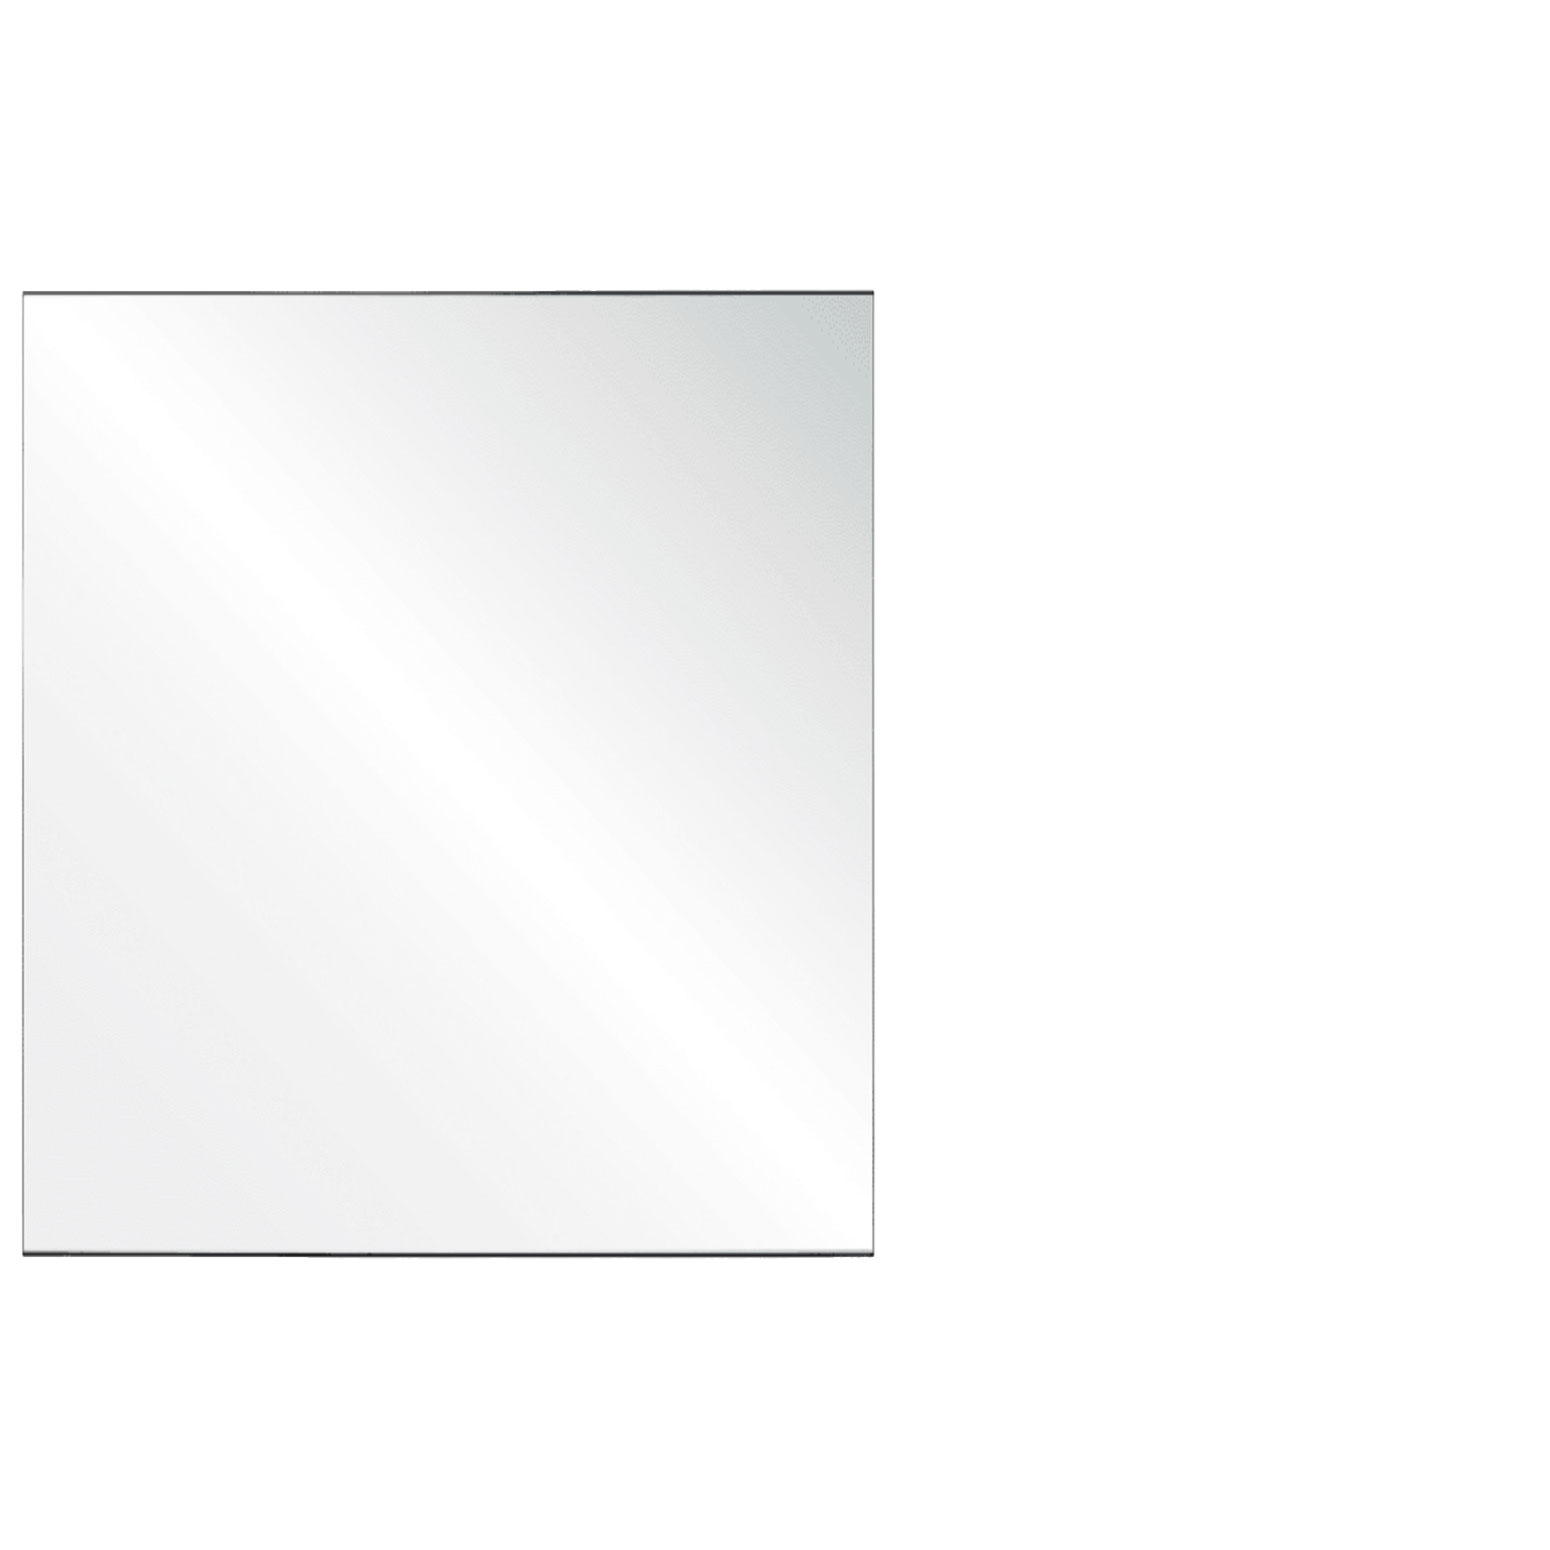 Clear Acrylic Screen with Square Edges – 42″W x 30″H